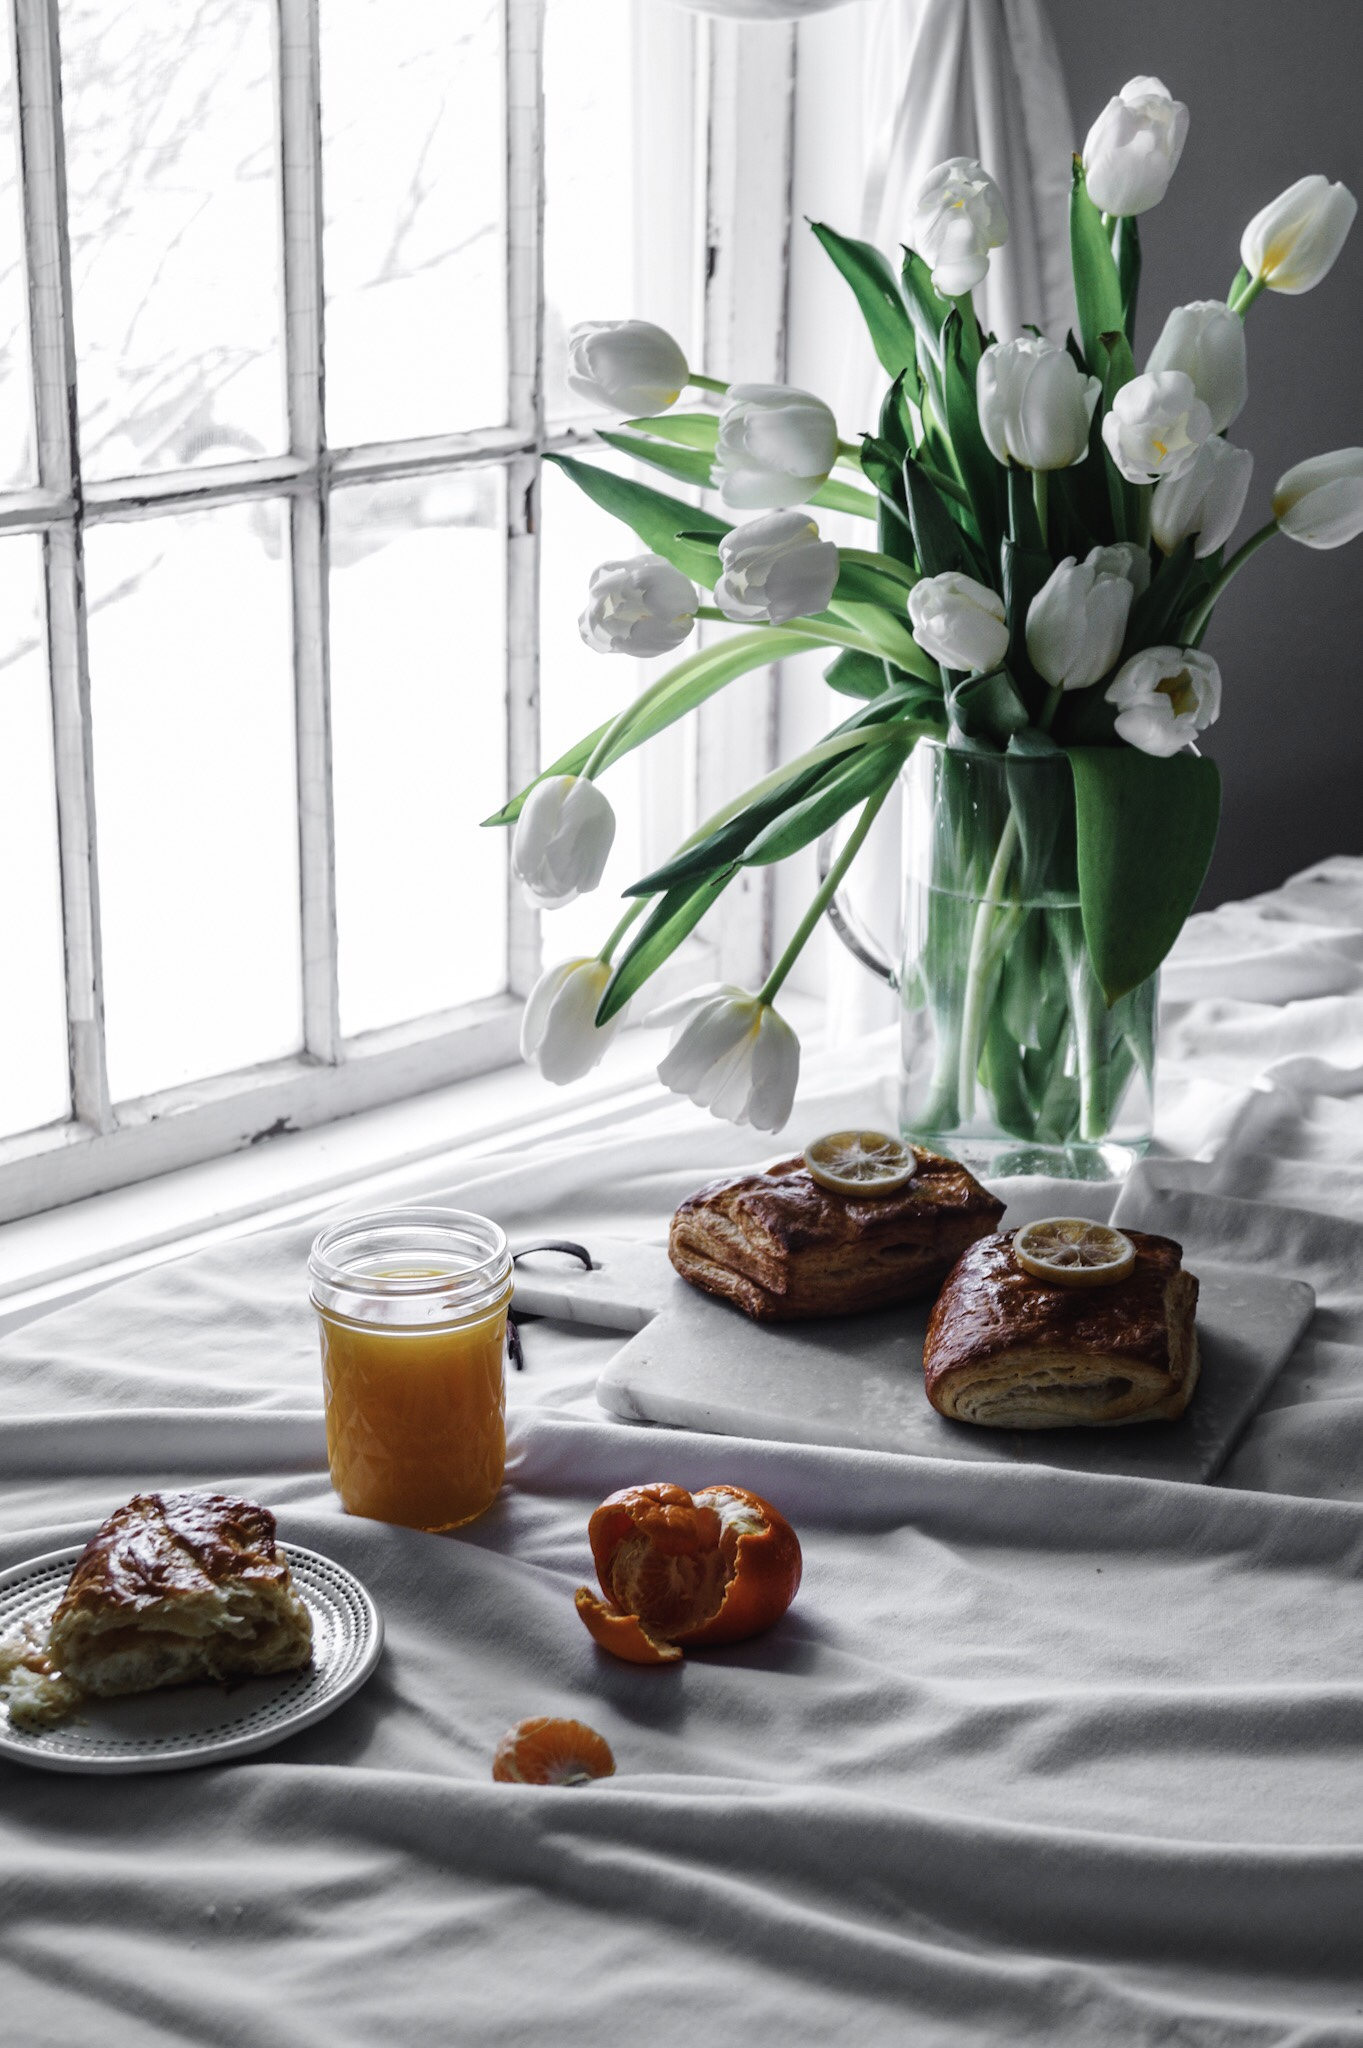 Super bright lemony filling tucked neatly inside the most delicious crispy-flaky Danish pastry. An early spring picnic, a flower bouquet of white tulips,  a wild story about boys and the perfect early spring brunch by A Messy Bun Kitchen